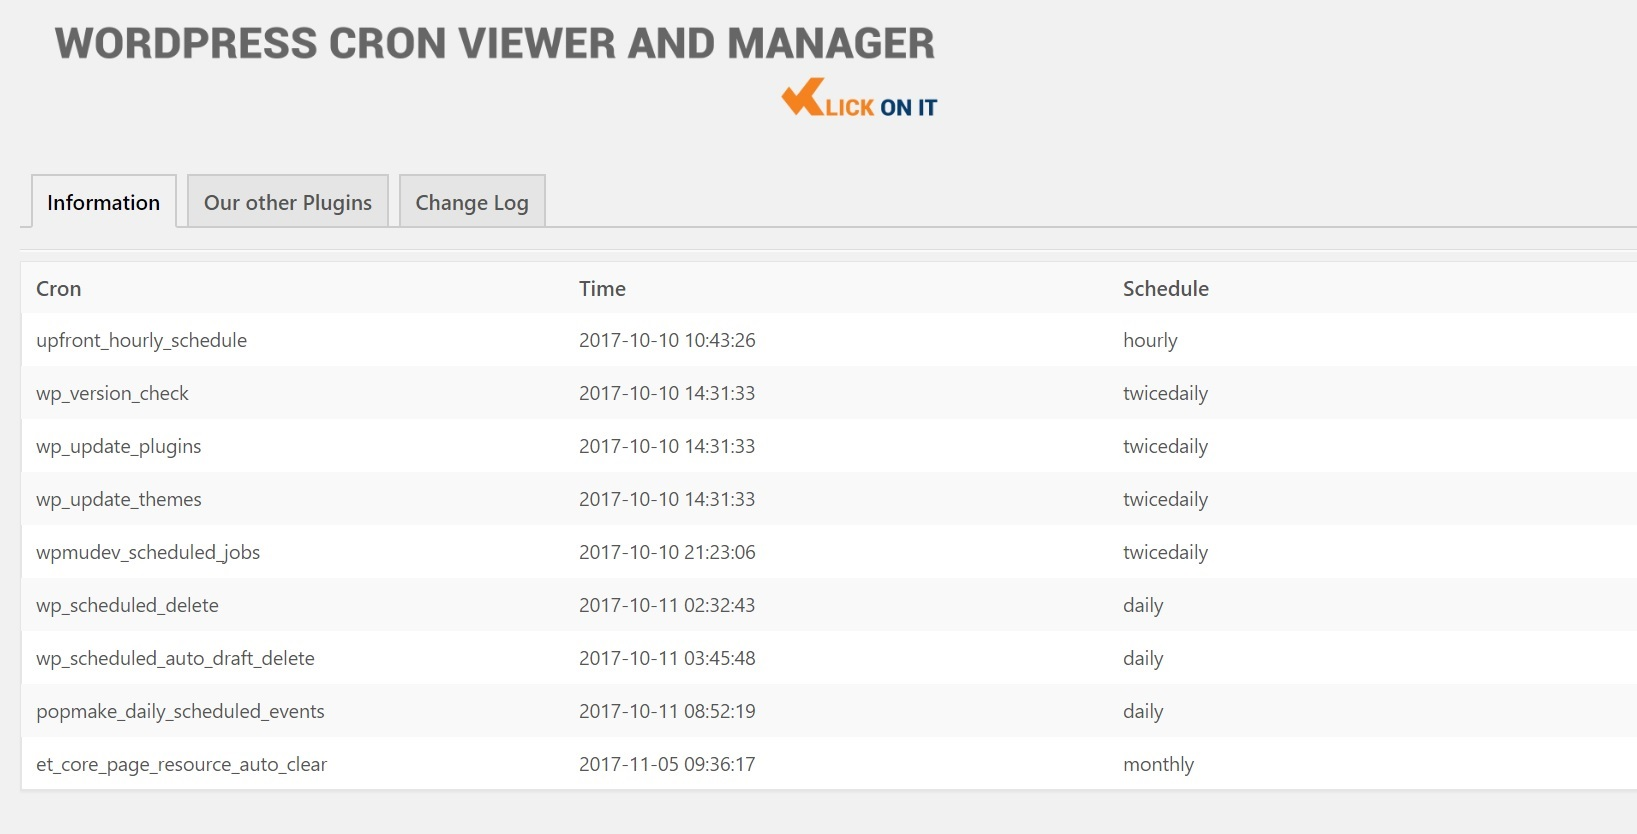 WP Cron Viewer and Manager